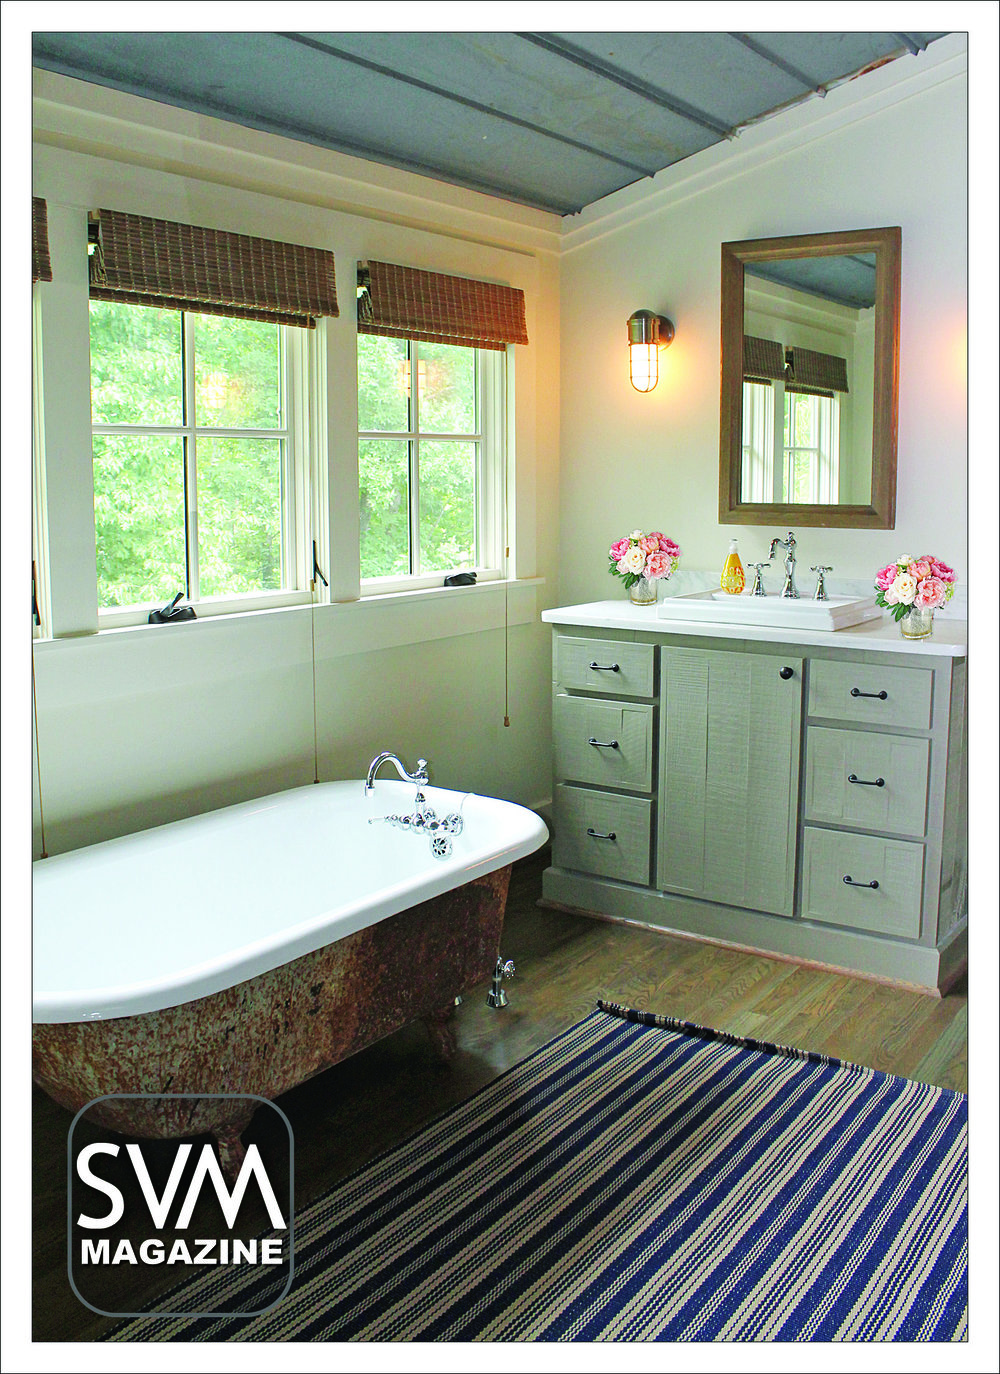 The upstairs bathroom features a claw foot tub and a custom made marble top vanity which offers views of the front of the house.